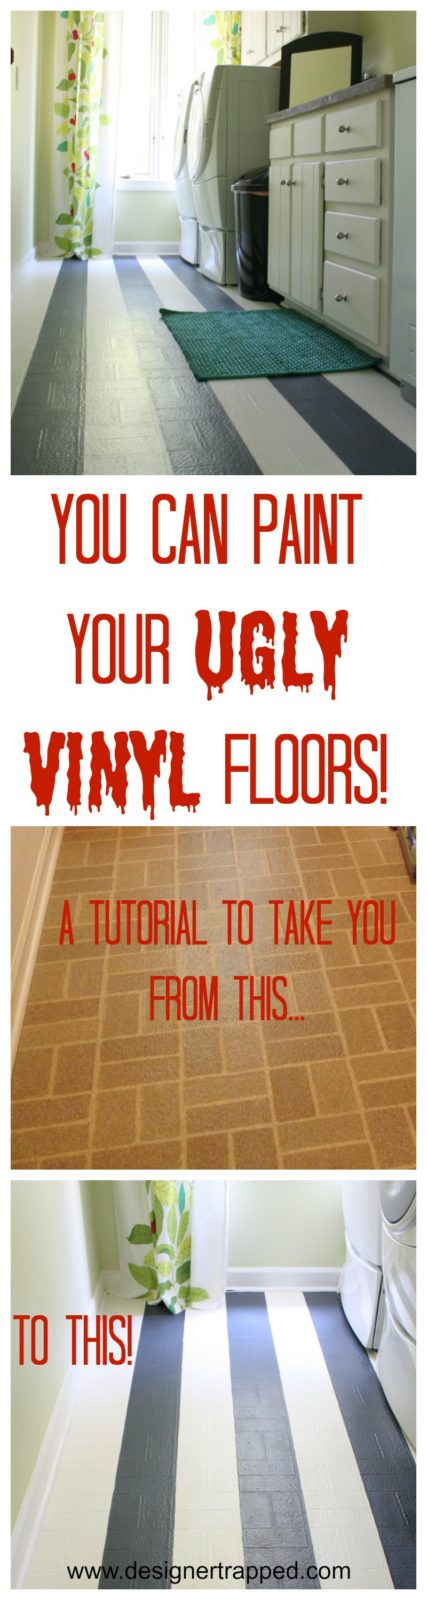 Learn to Paint Vinyl Floors! A detailed tutorial by Designer Trapped in a Lawyer's Body {designertrapped.com}